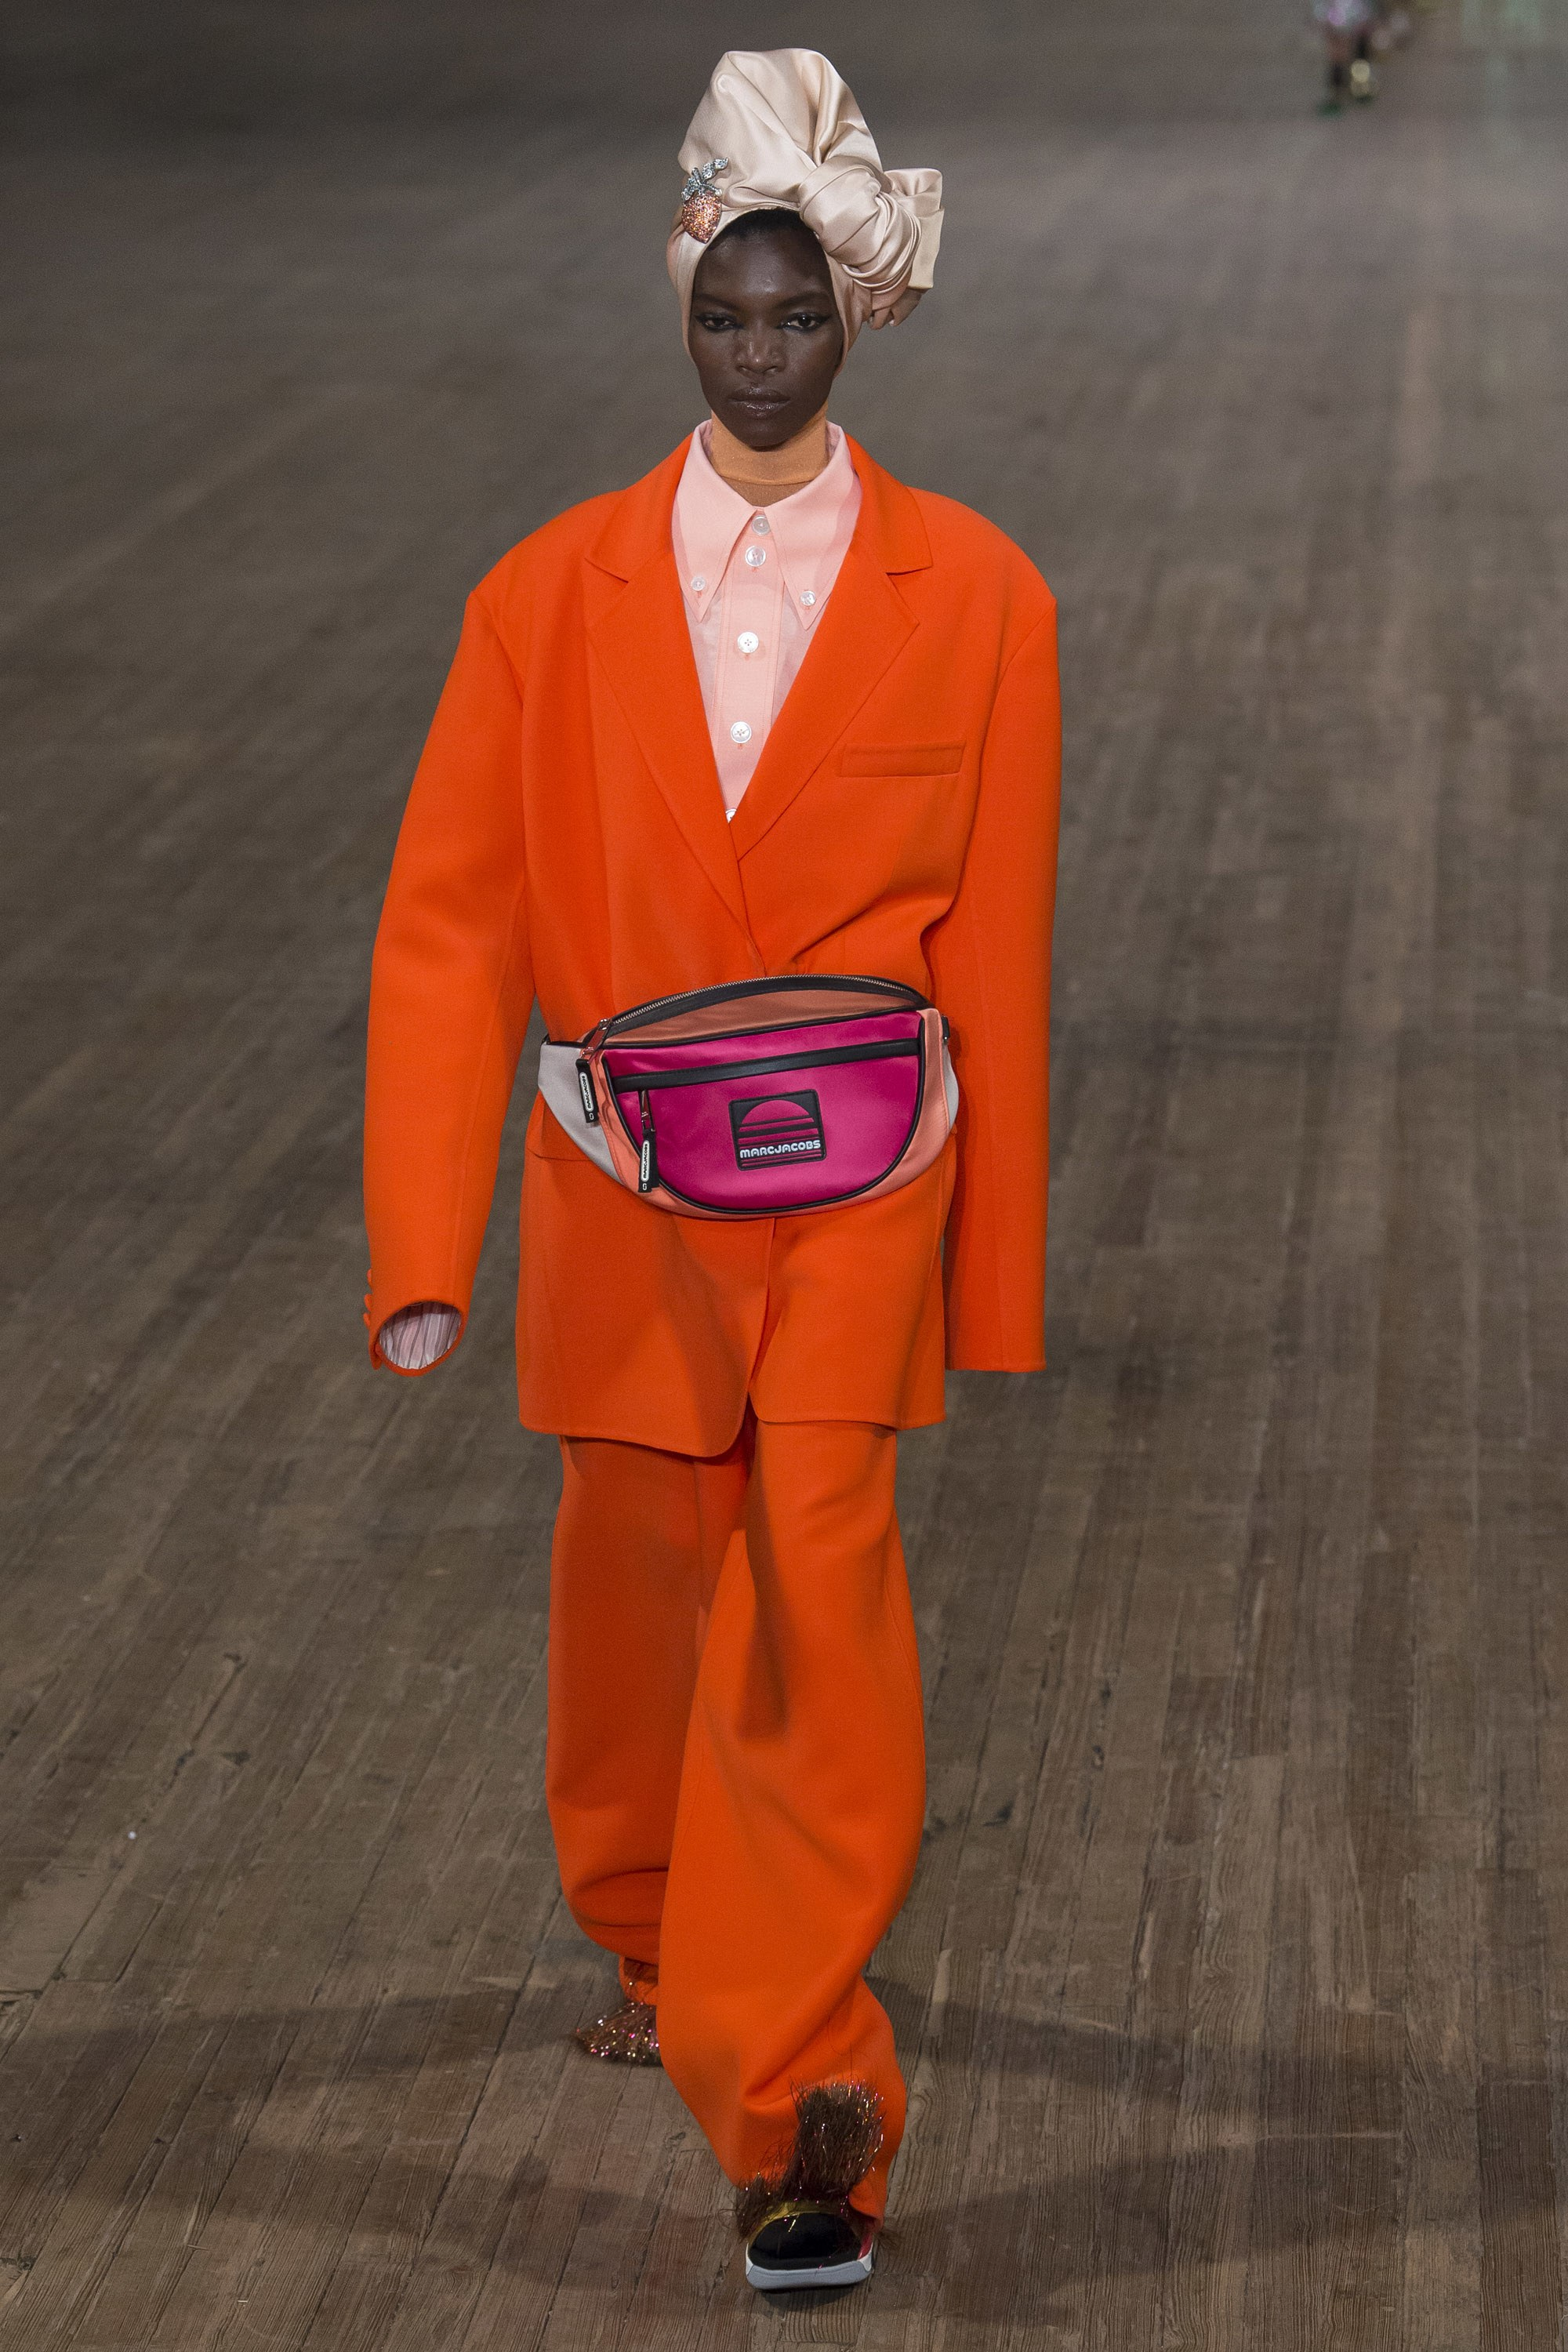 marc jacobs xuan he 2018 02